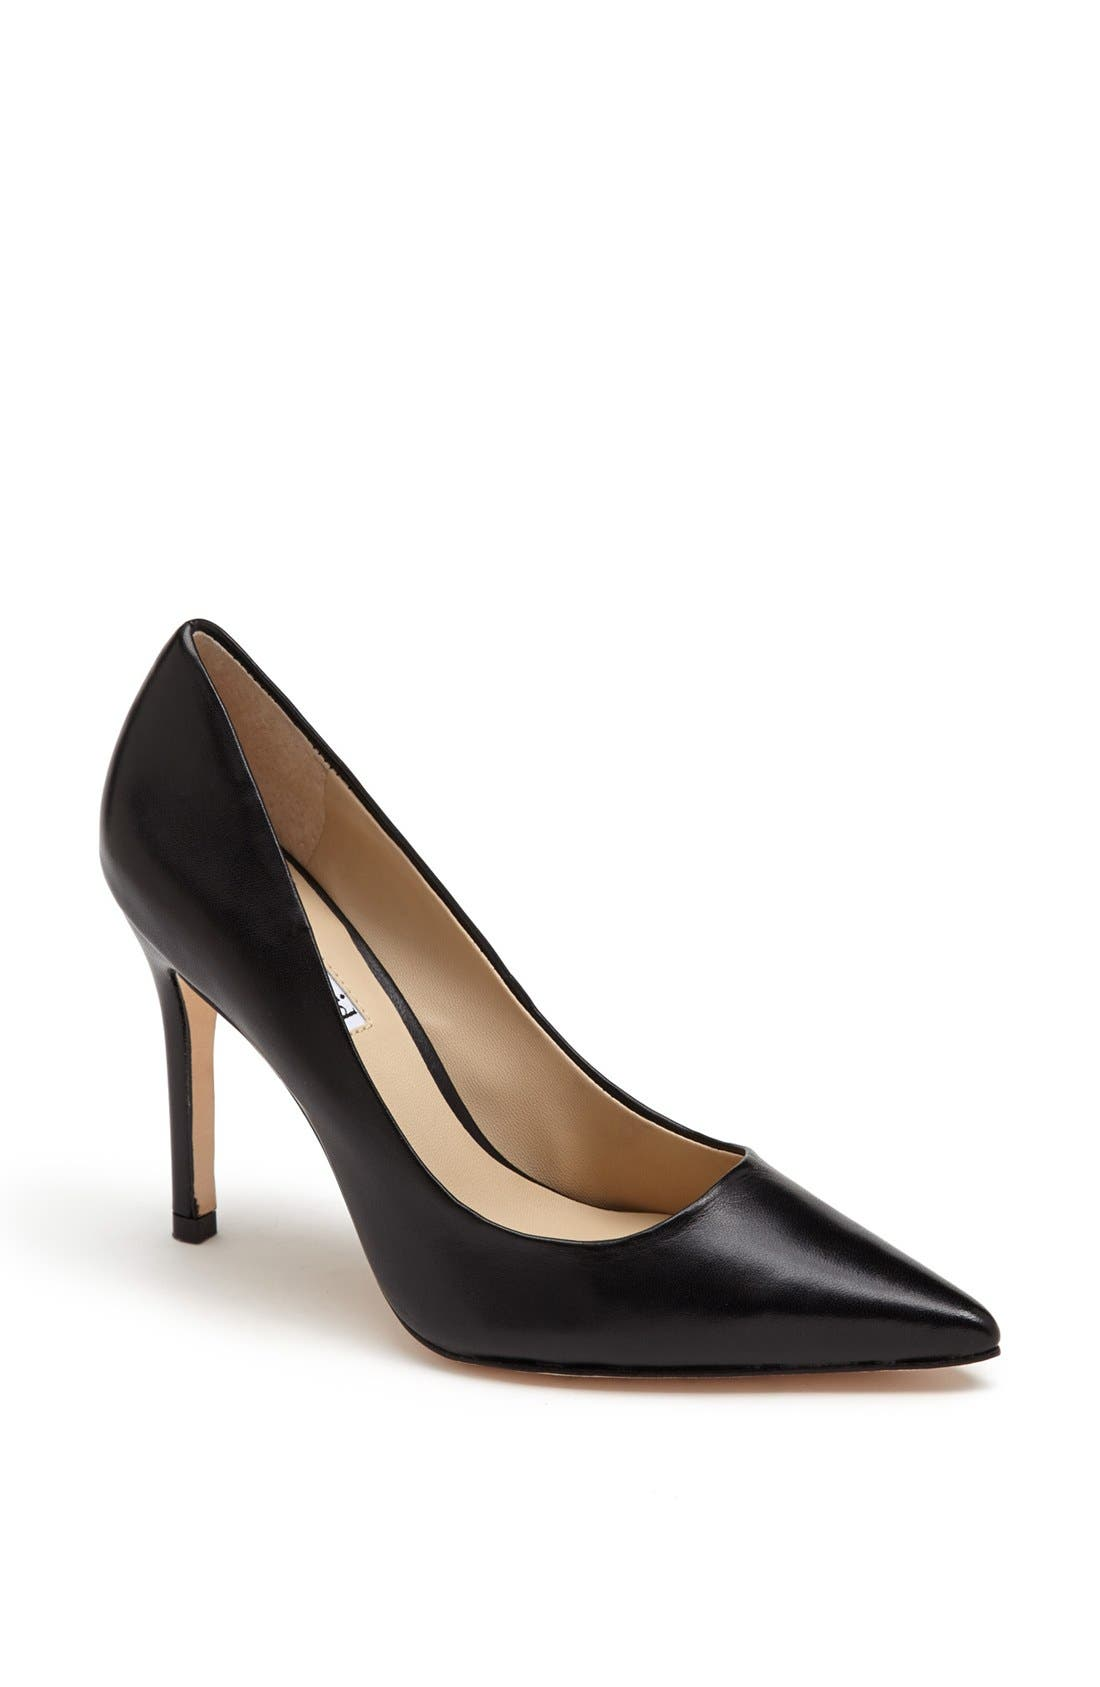 Main Image - Charles David 'Katya' Leather Pump